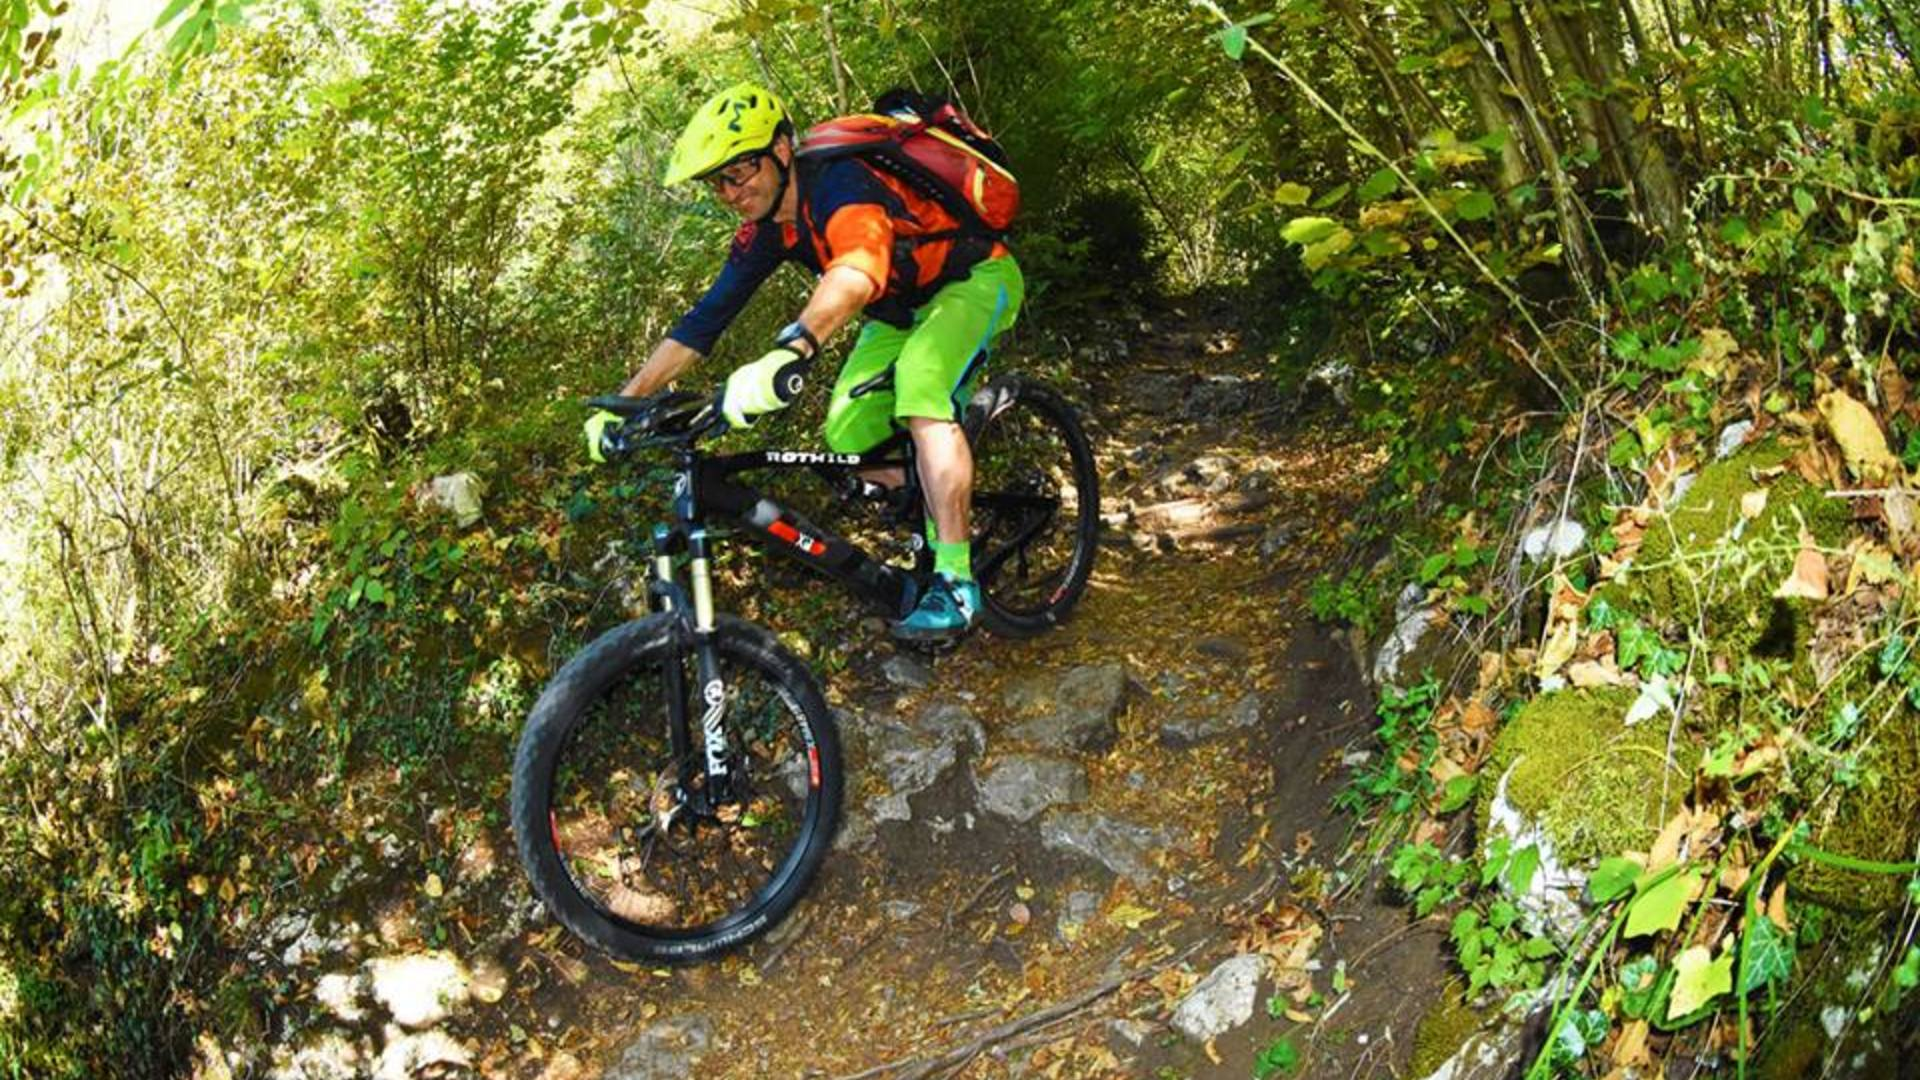 E-Bike: the pleasure to reach the most challenging peaks enjoying a pleasant stress-free day